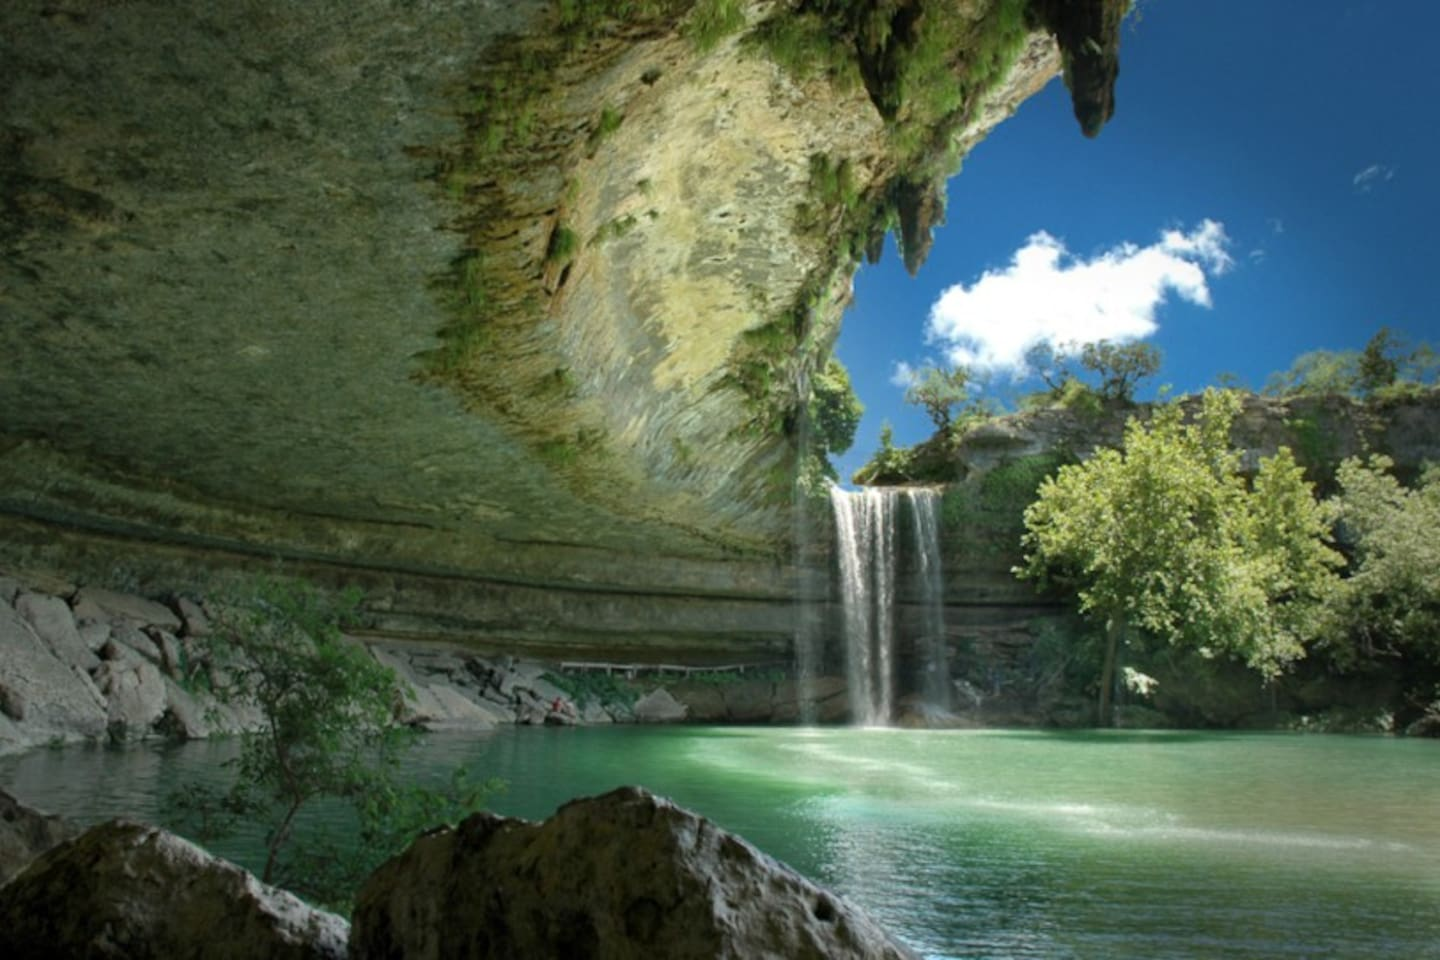 Beautiful Hamilton Pool Preserve just down the road!